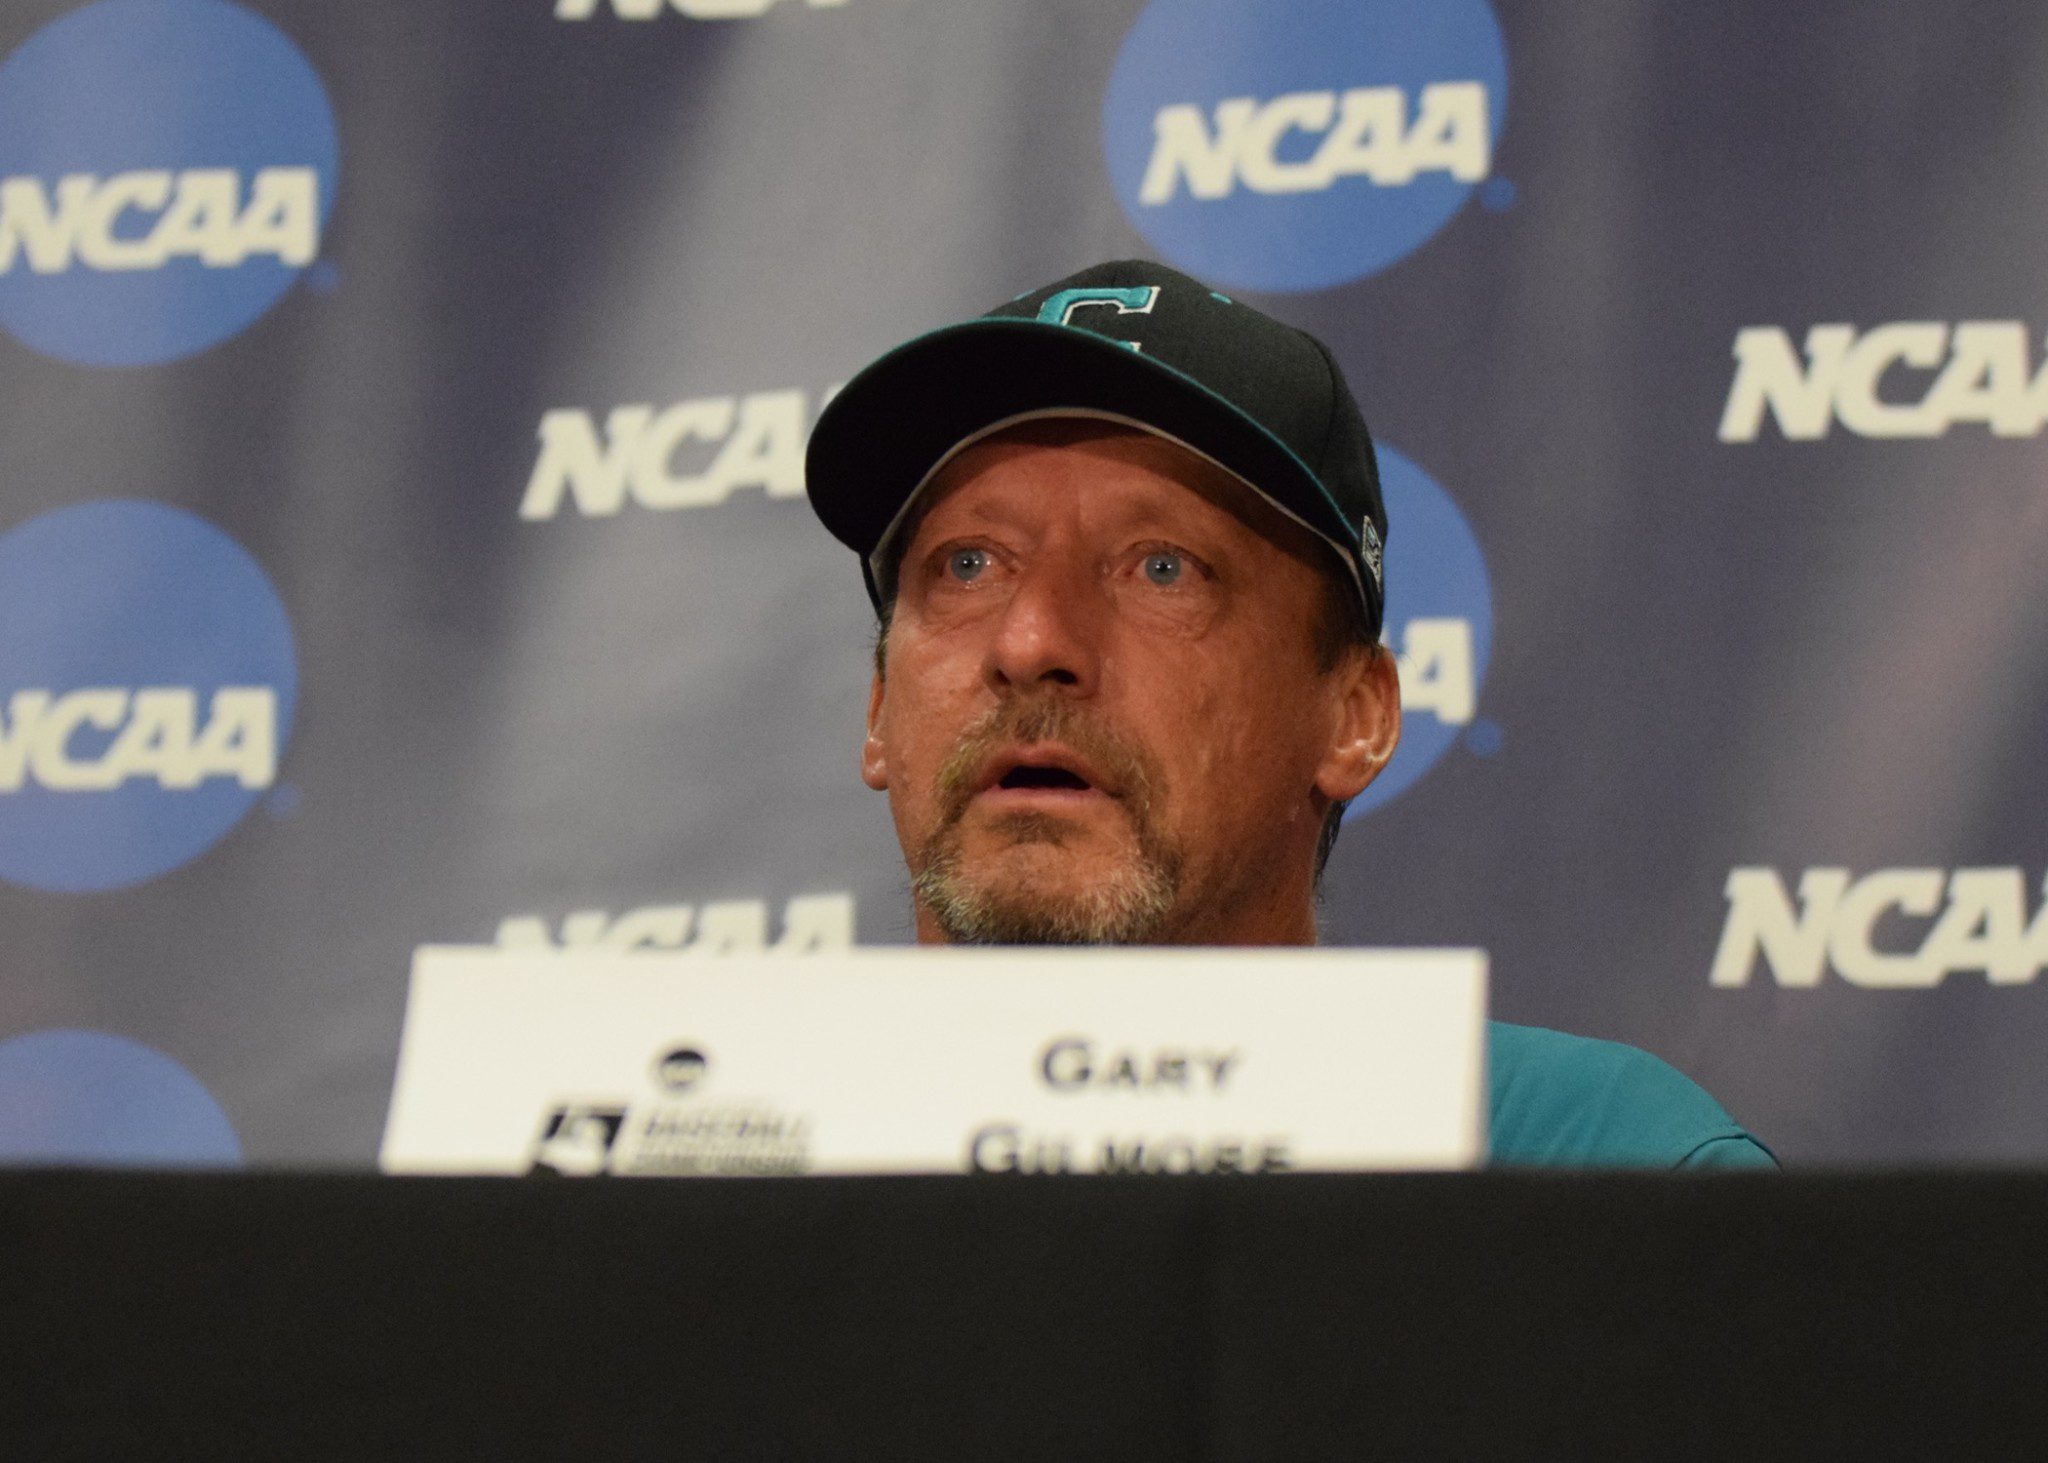 Gary Gilmore's eyes got watery as Anthony Marks talked about the team's mission to get him to Omaha (Aaron Fitt)